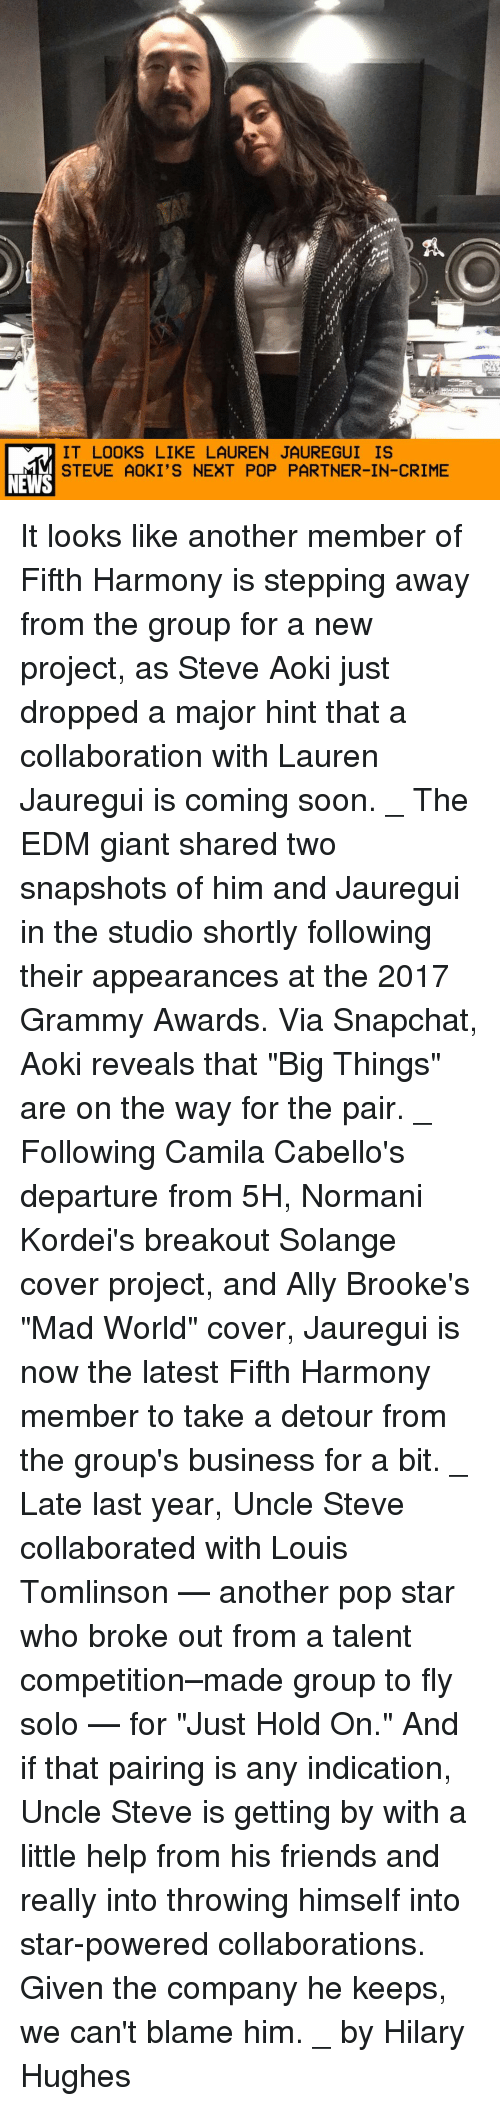 """breakout: IT LOOKS LIKE LAUREN JAUREGUI IS  STEUE AOKI'S NEXT POP PARTNER-IN-CRIME  NEWS It looks like another member of Fifth Harmony is stepping away from the group for a new project, as Steve Aoki just dropped a major hint that a collaboration with Lauren Jauregui is coming soon. _ The EDM giant shared two snapshots of him and Jauregui in the studio shortly following their appearances at the 2017 Grammy Awards. Via Snapchat, Aoki reveals that """"Big Things"""" are on the way for the pair. _ Following Camila Cabello's departure from 5H, Normani Kordei's breakout Solange cover project, and Ally Brooke's """"Mad World"""" cover, Jauregui is now the latest Fifth Harmony member to take a detour from the group's business for a bit. _ Late last year, Uncle Steve collaborated with Louis Tomlinson — another pop star who broke out from a talent competition–made group to fly solo — for """"Just Hold On."""" And if that pairing is any indication, Uncle Steve is getting by with a little help from his friends and really into throwing himself into star-powered collaborations. Given the company he keeps, we can't blame him. _ by Hilary Hughes"""